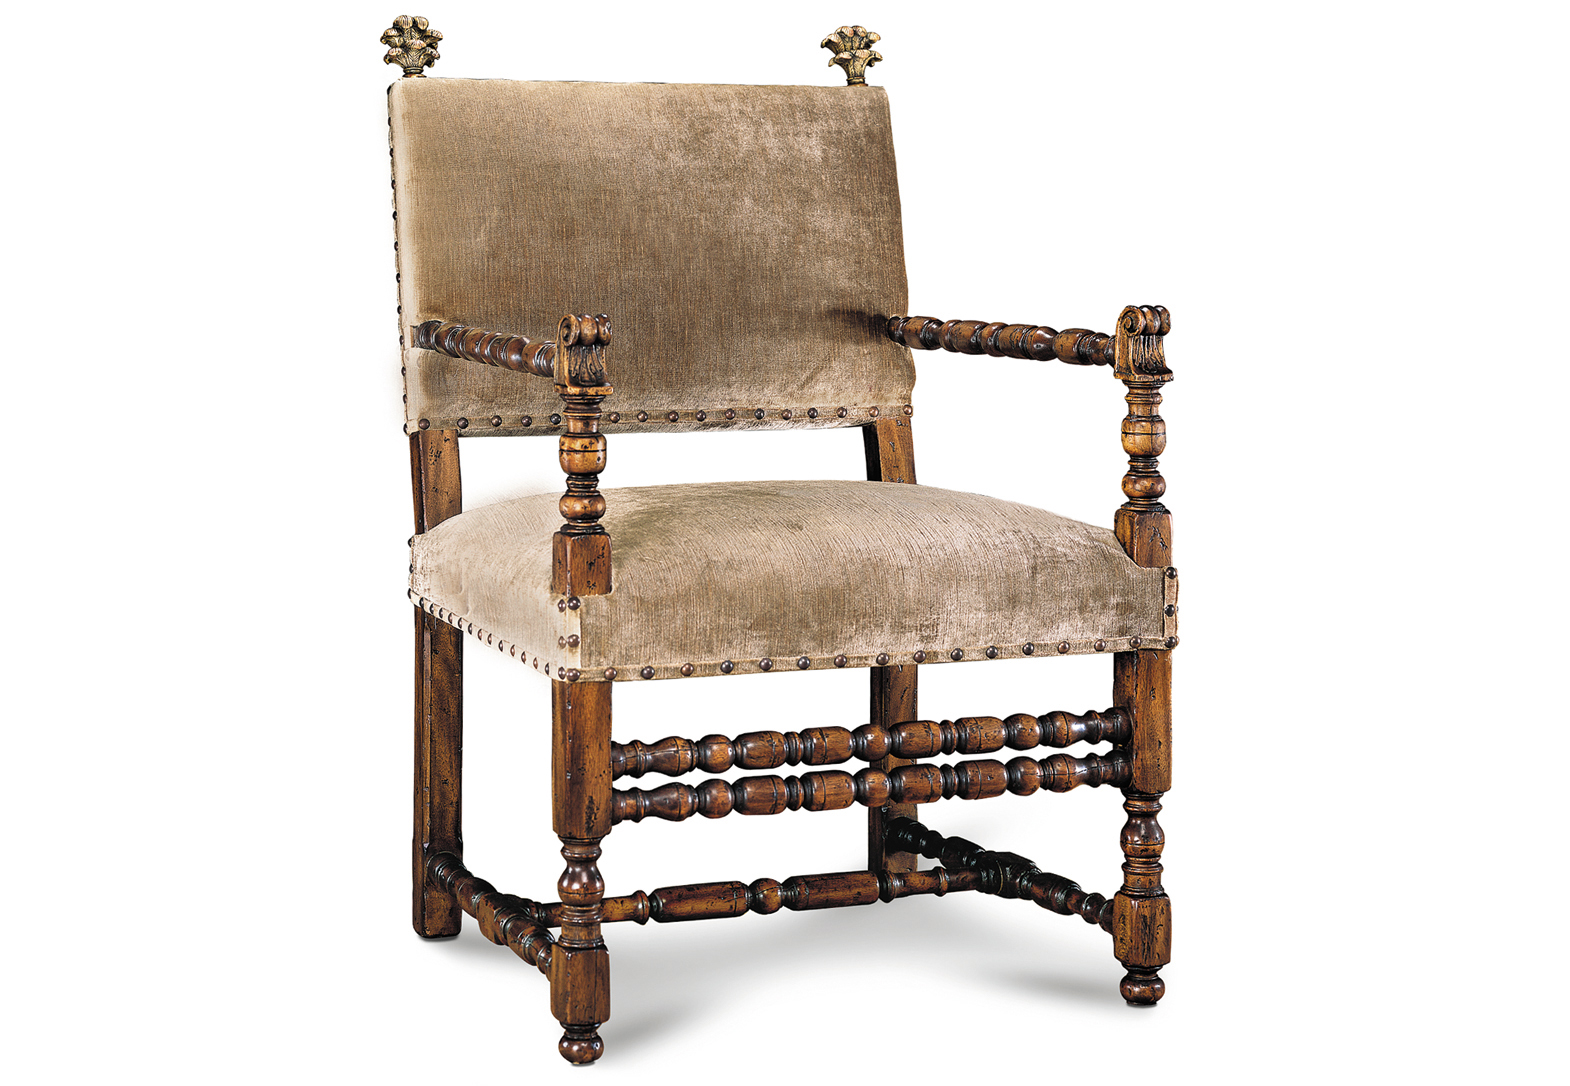 FARNESE CHAIR